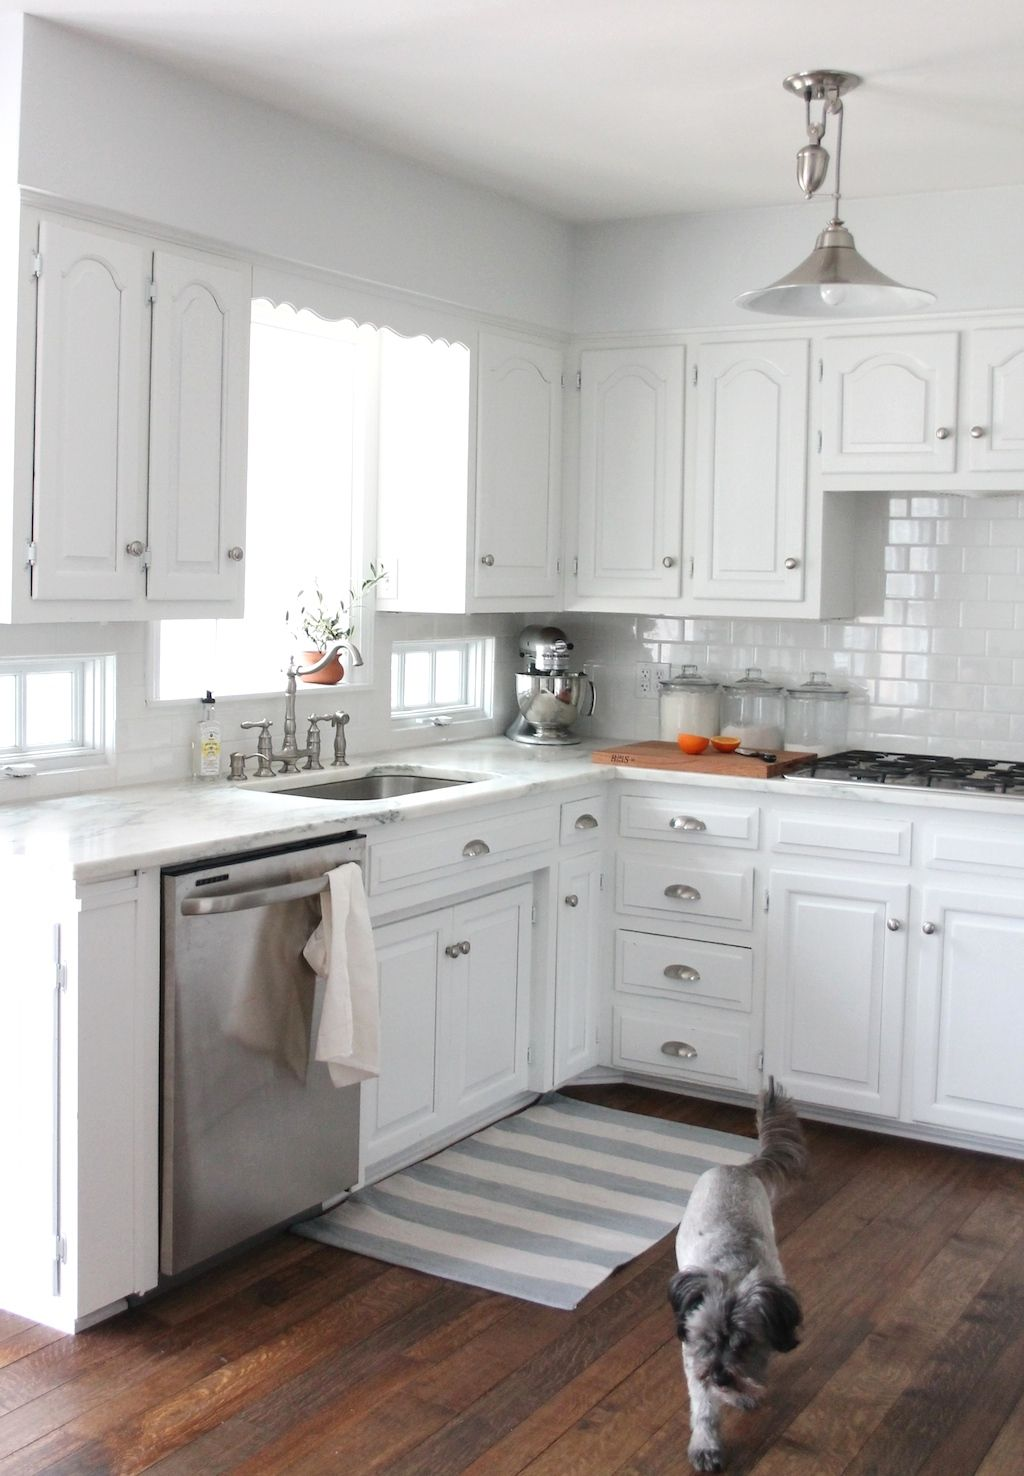 Remodel Kitchen White We Did It Our Kitchen Remodel  Easy Diy Projects Kitchens And